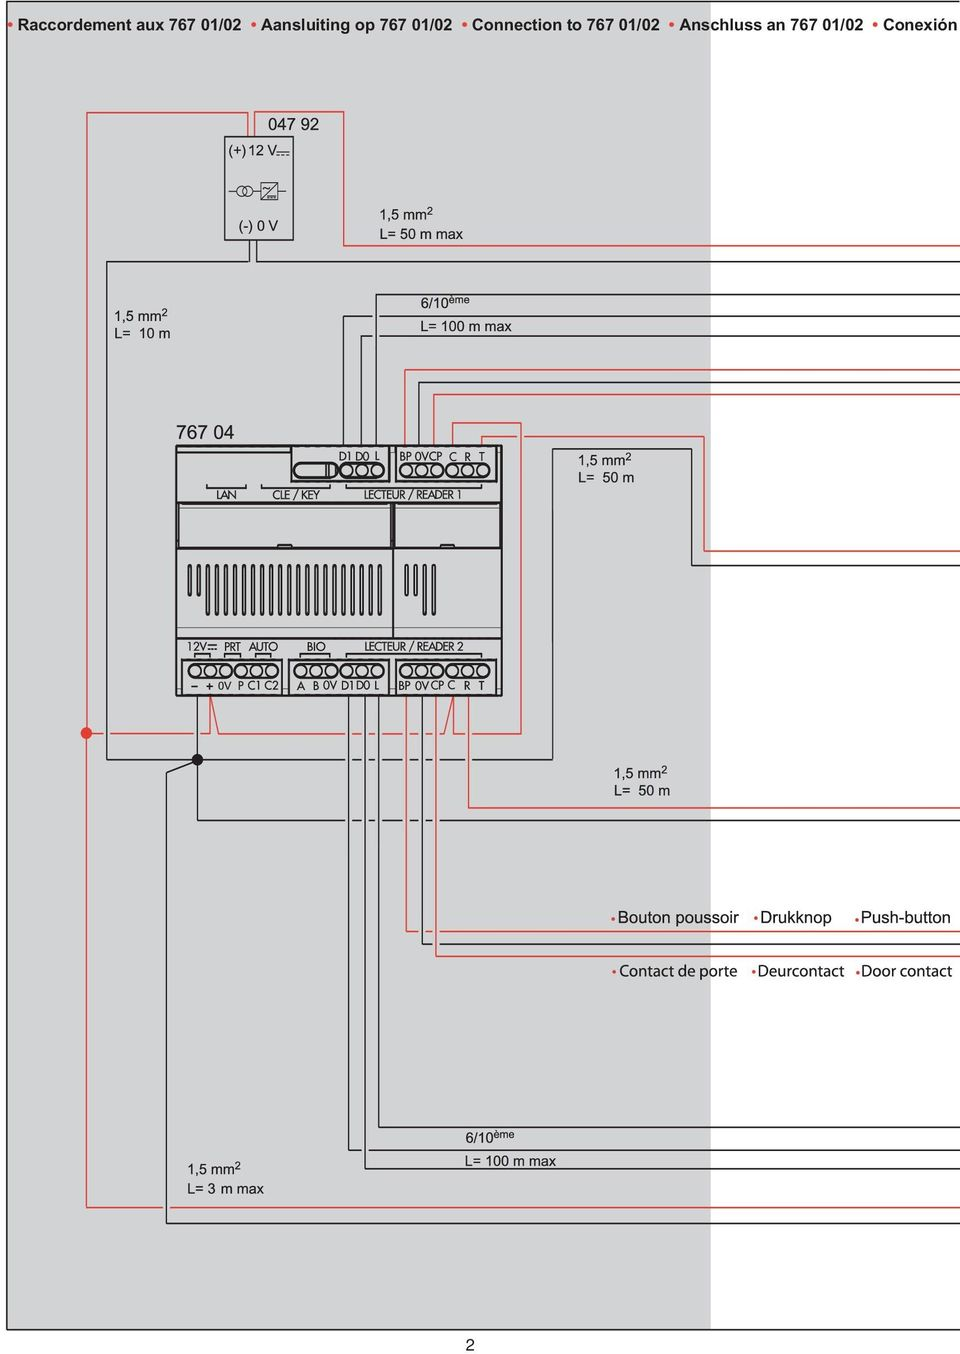 Connection to 767 01/02